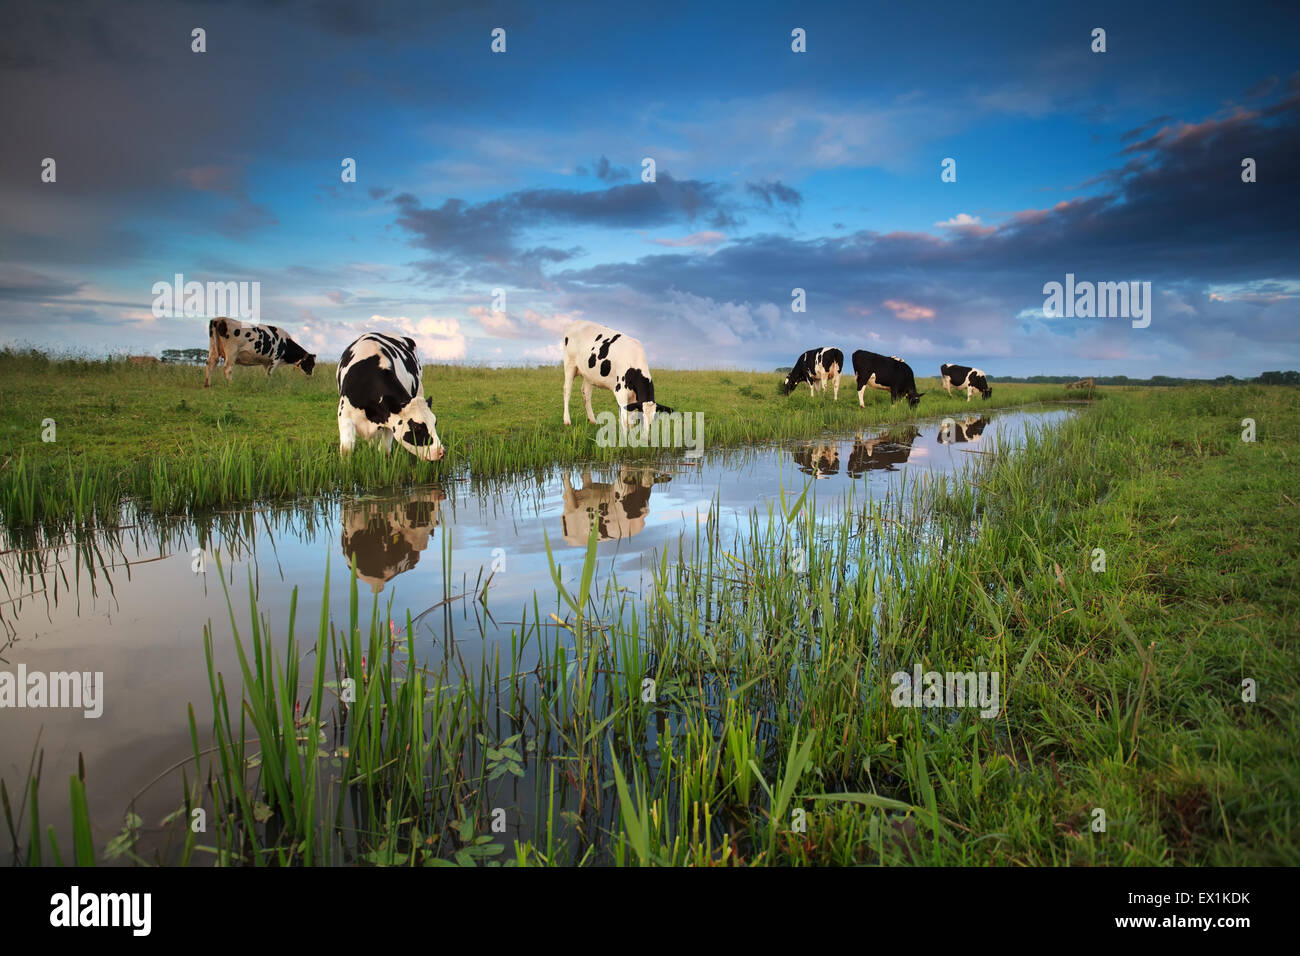 cows grazing on pasture by river in summer - Stock Image